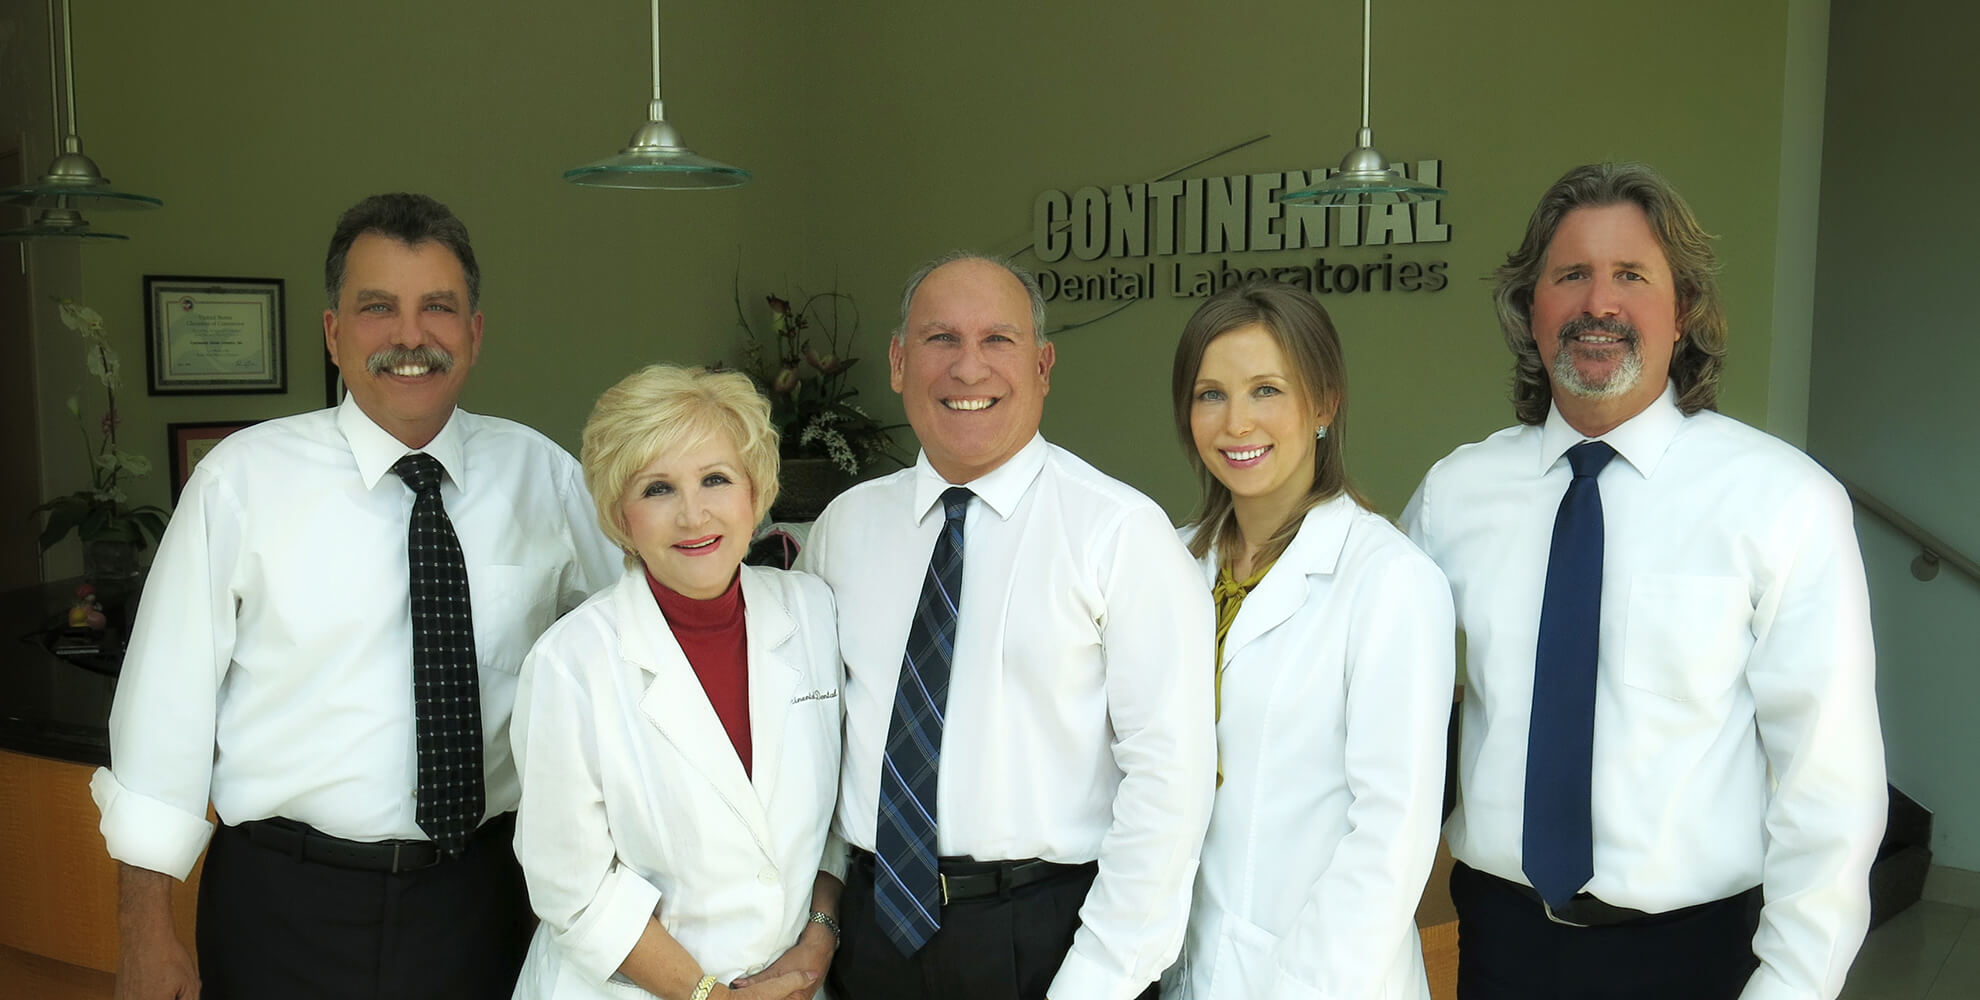 Our Continental Dental Lab Team showing and standing side by side in front of our logo in the office